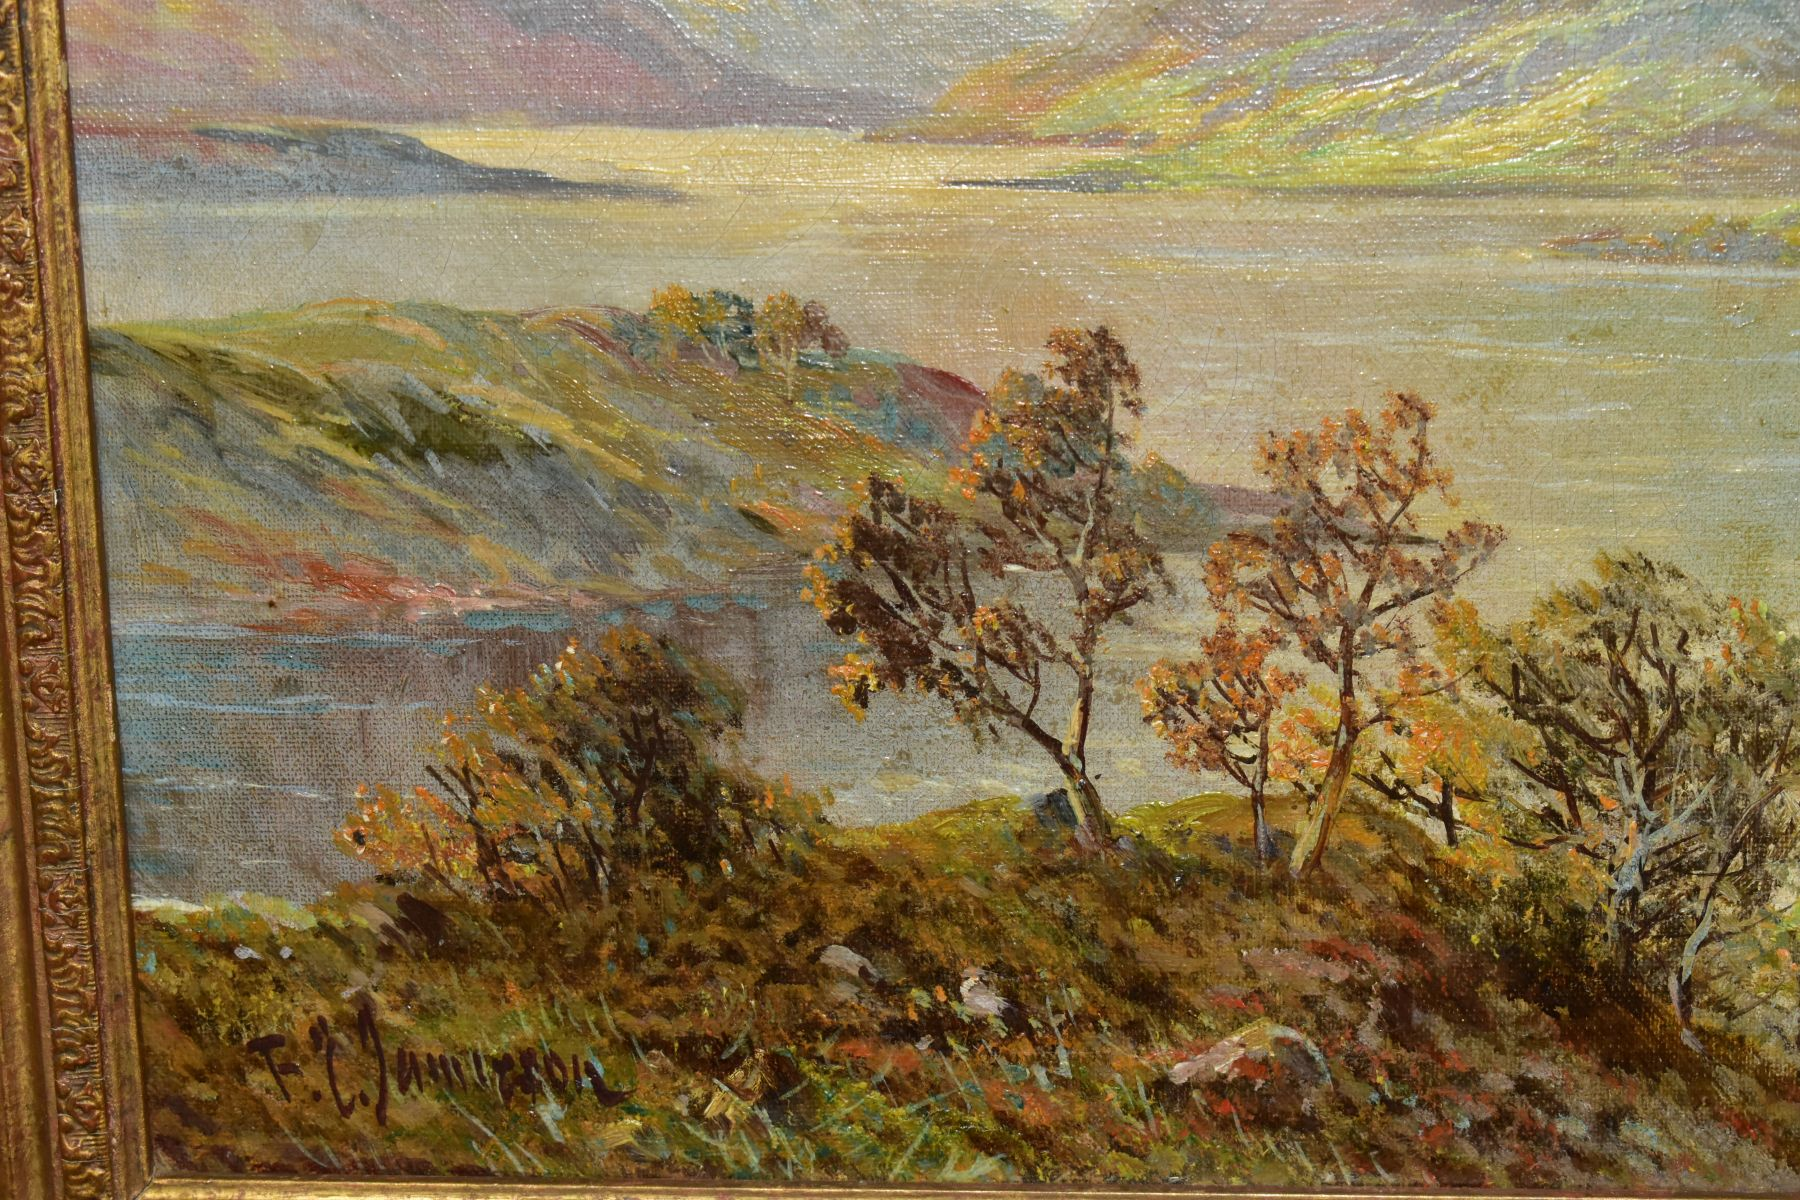 FRANCIS E.JAMIESON (1895-1950) 'LOCH KATRINE', a Scottish landscape, a large body of water to the - Image 3 of 4